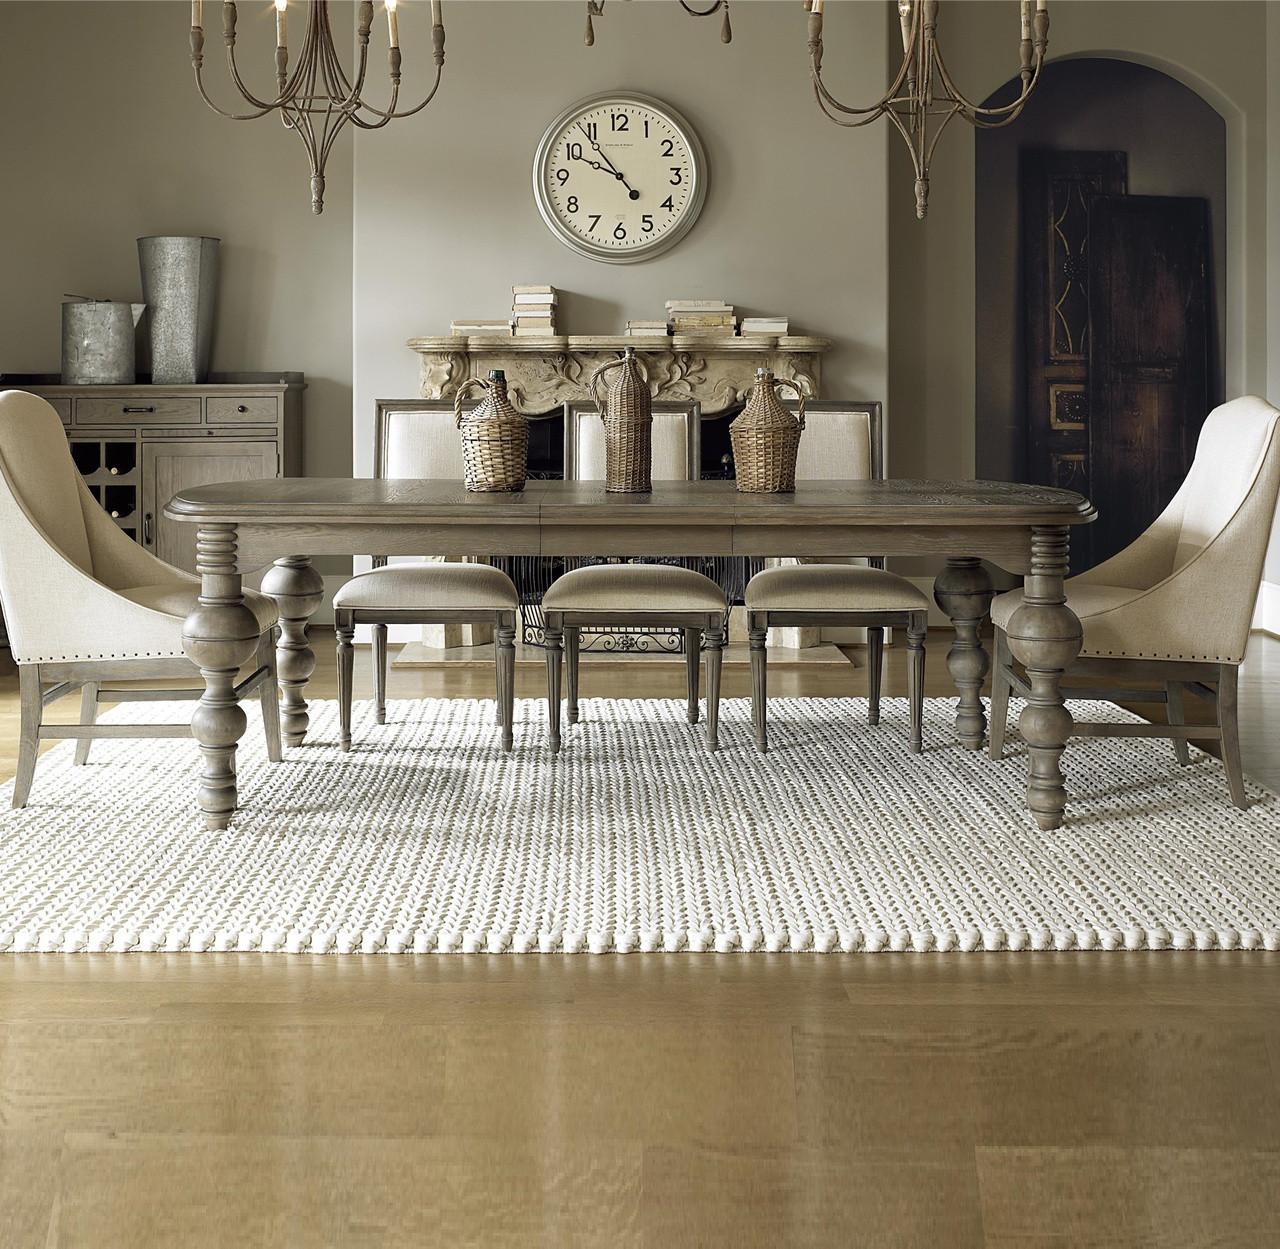 French Country Dining Room Ideas beautiful french country dining table part - 1: wisteria | home